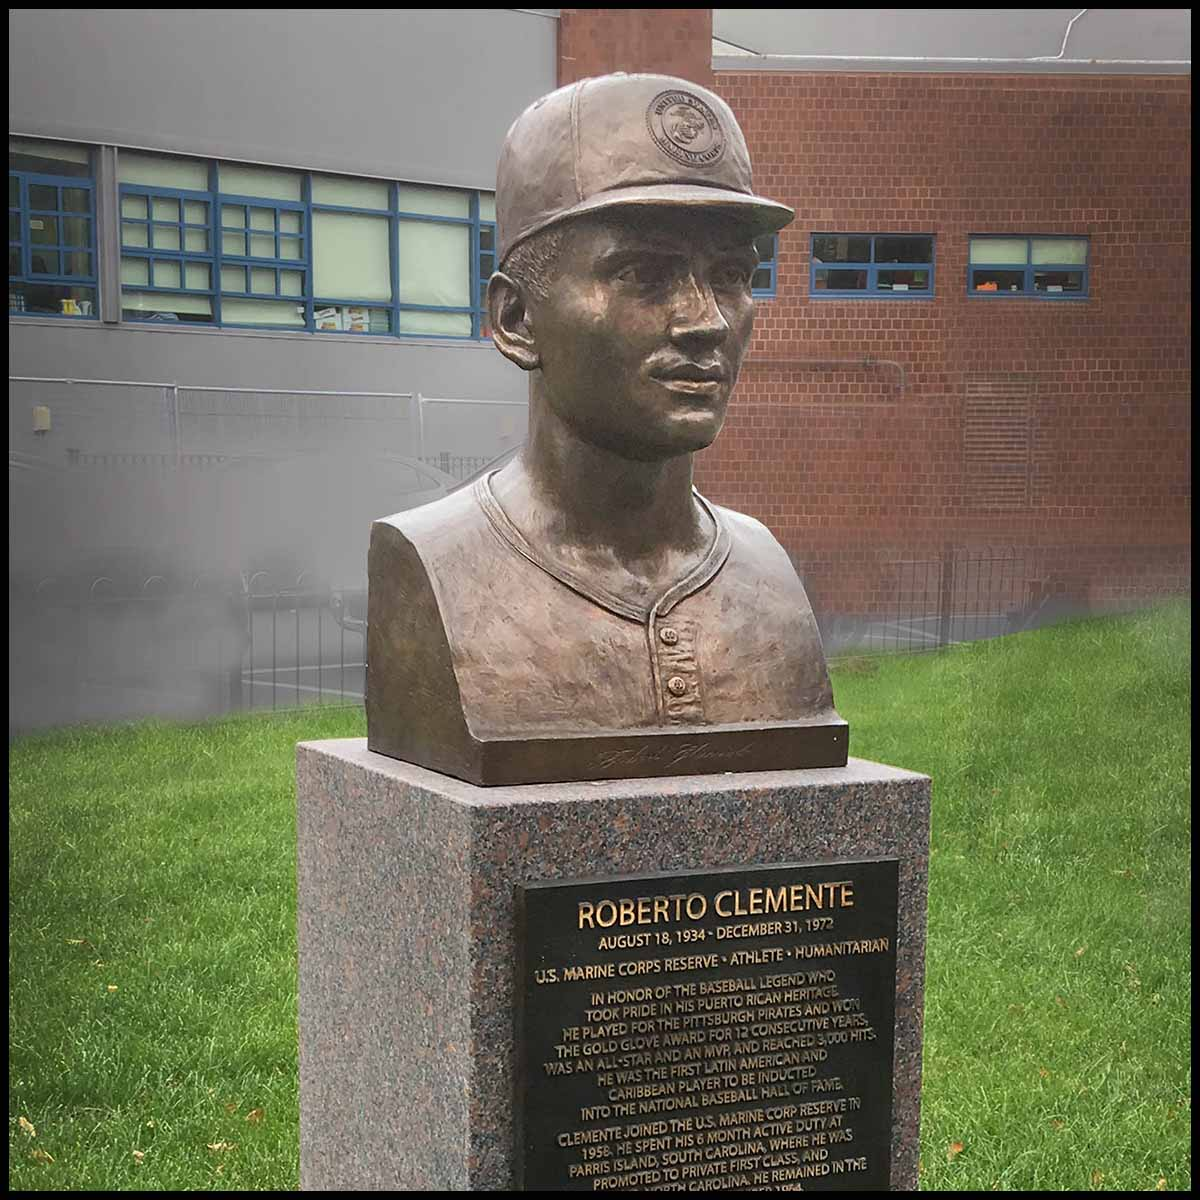 photo of bronze portrait bust sculpture of Roberto Clemente on granite base with bronze plaque